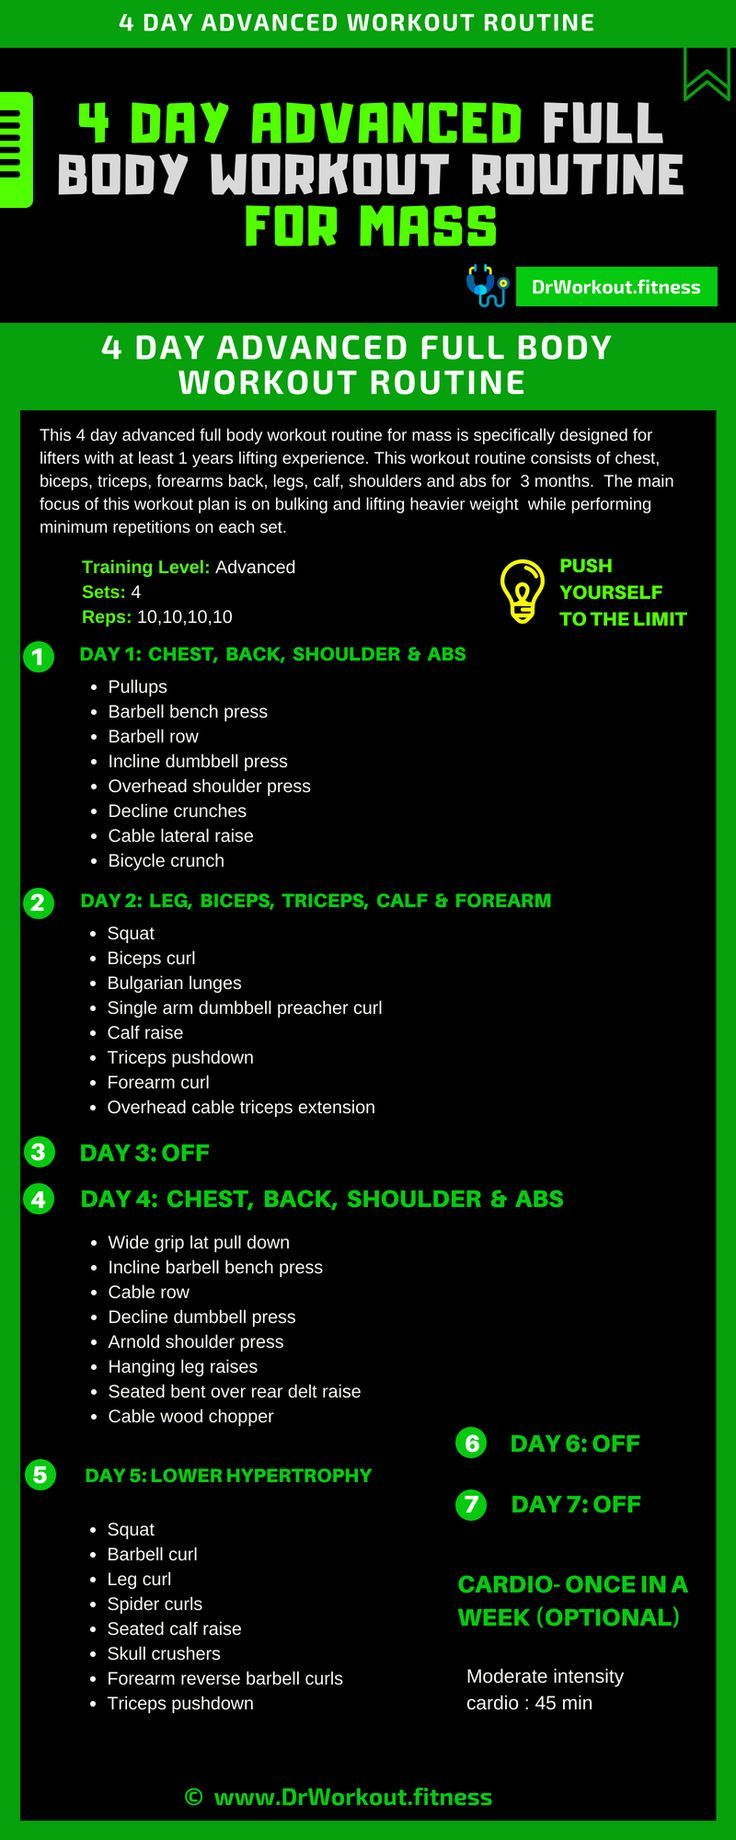 4 Day Advanced Full Body Workout Routine For Mass Full Body Workout Routine Body Workout Plan Fitness Body